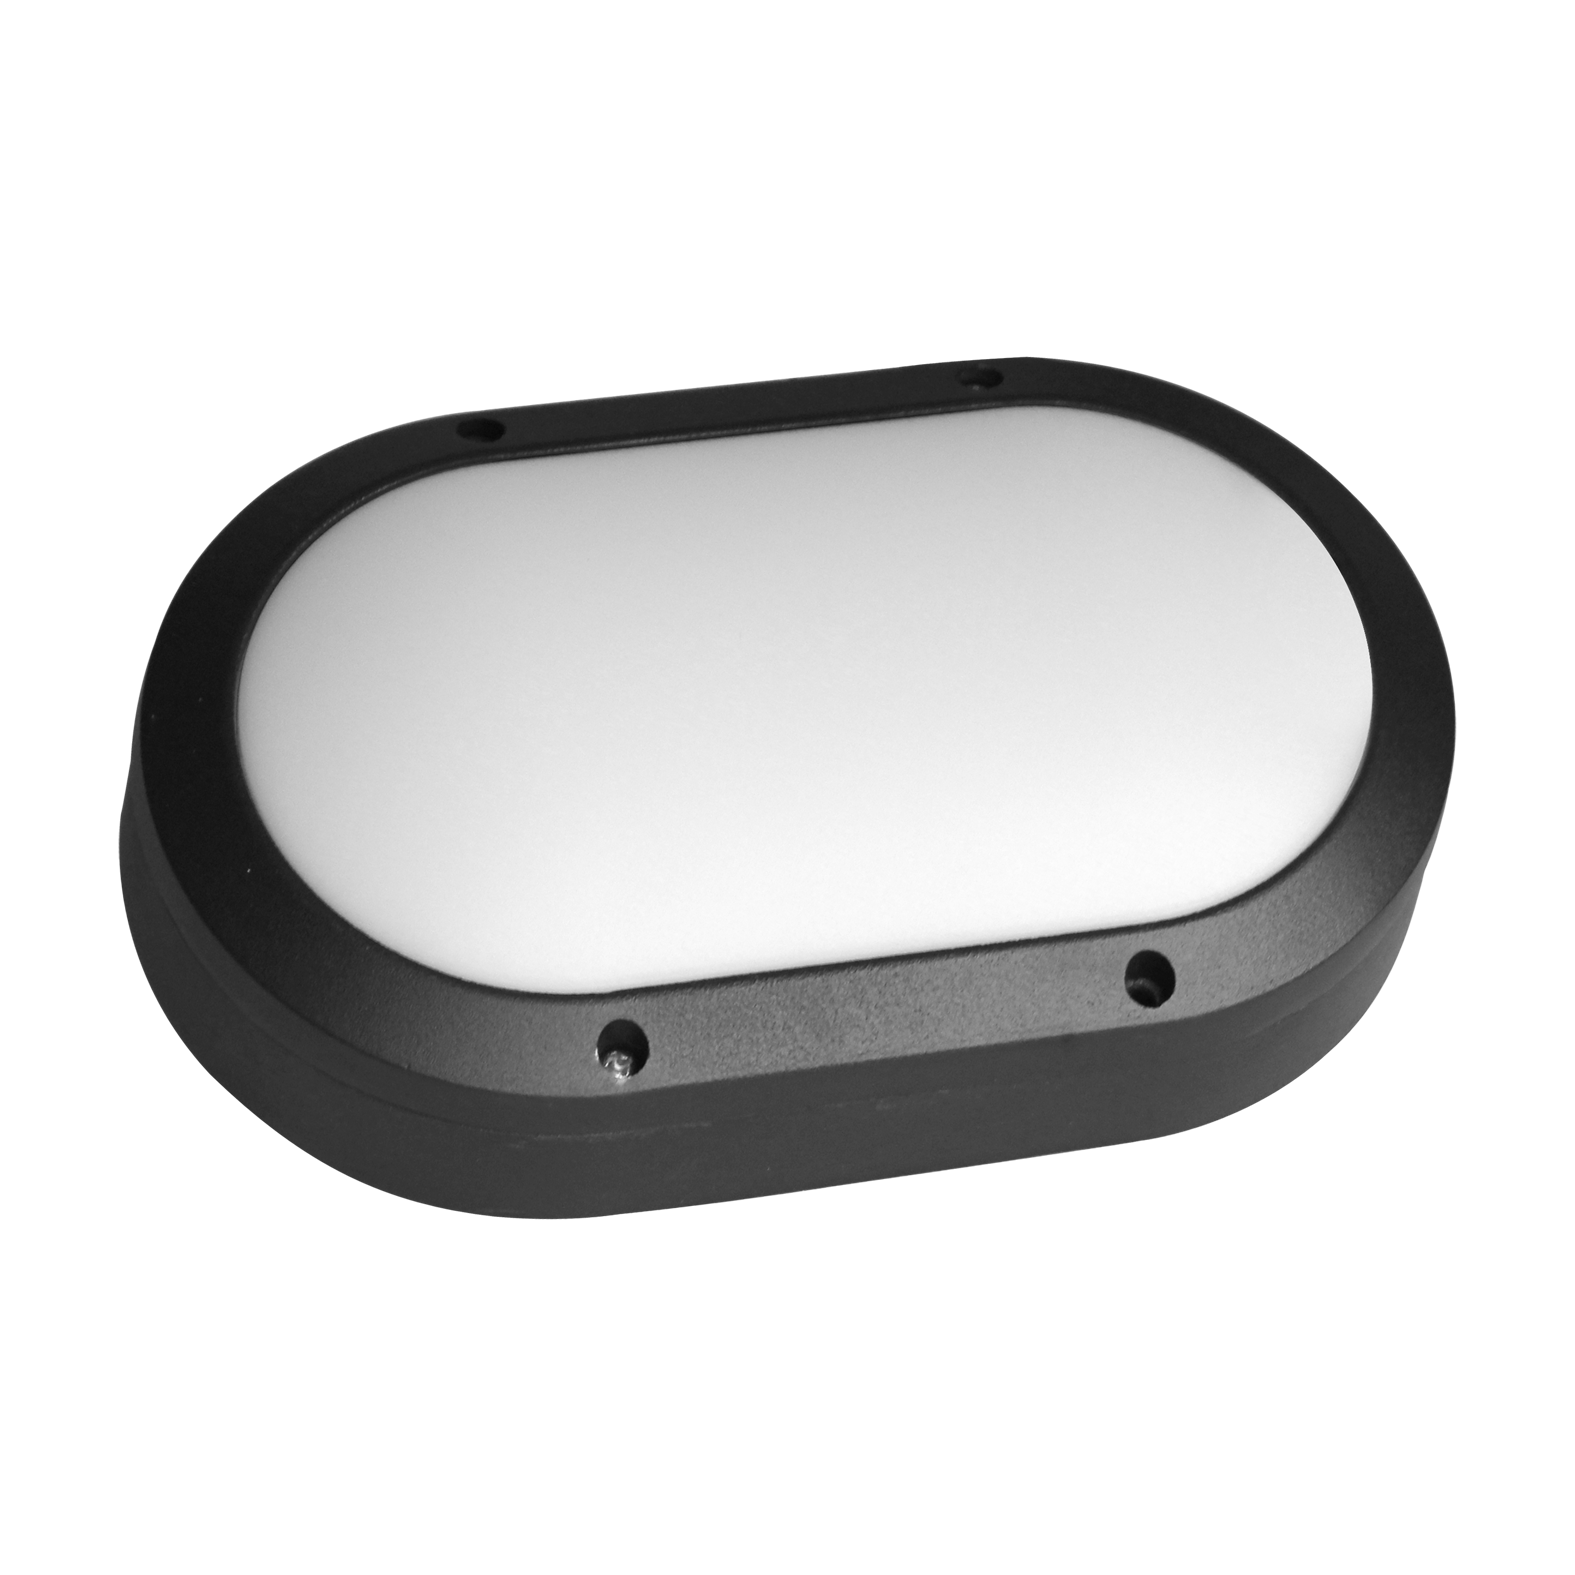 outdoor led bulkhead light ip65 waterproof rated top quality smd led